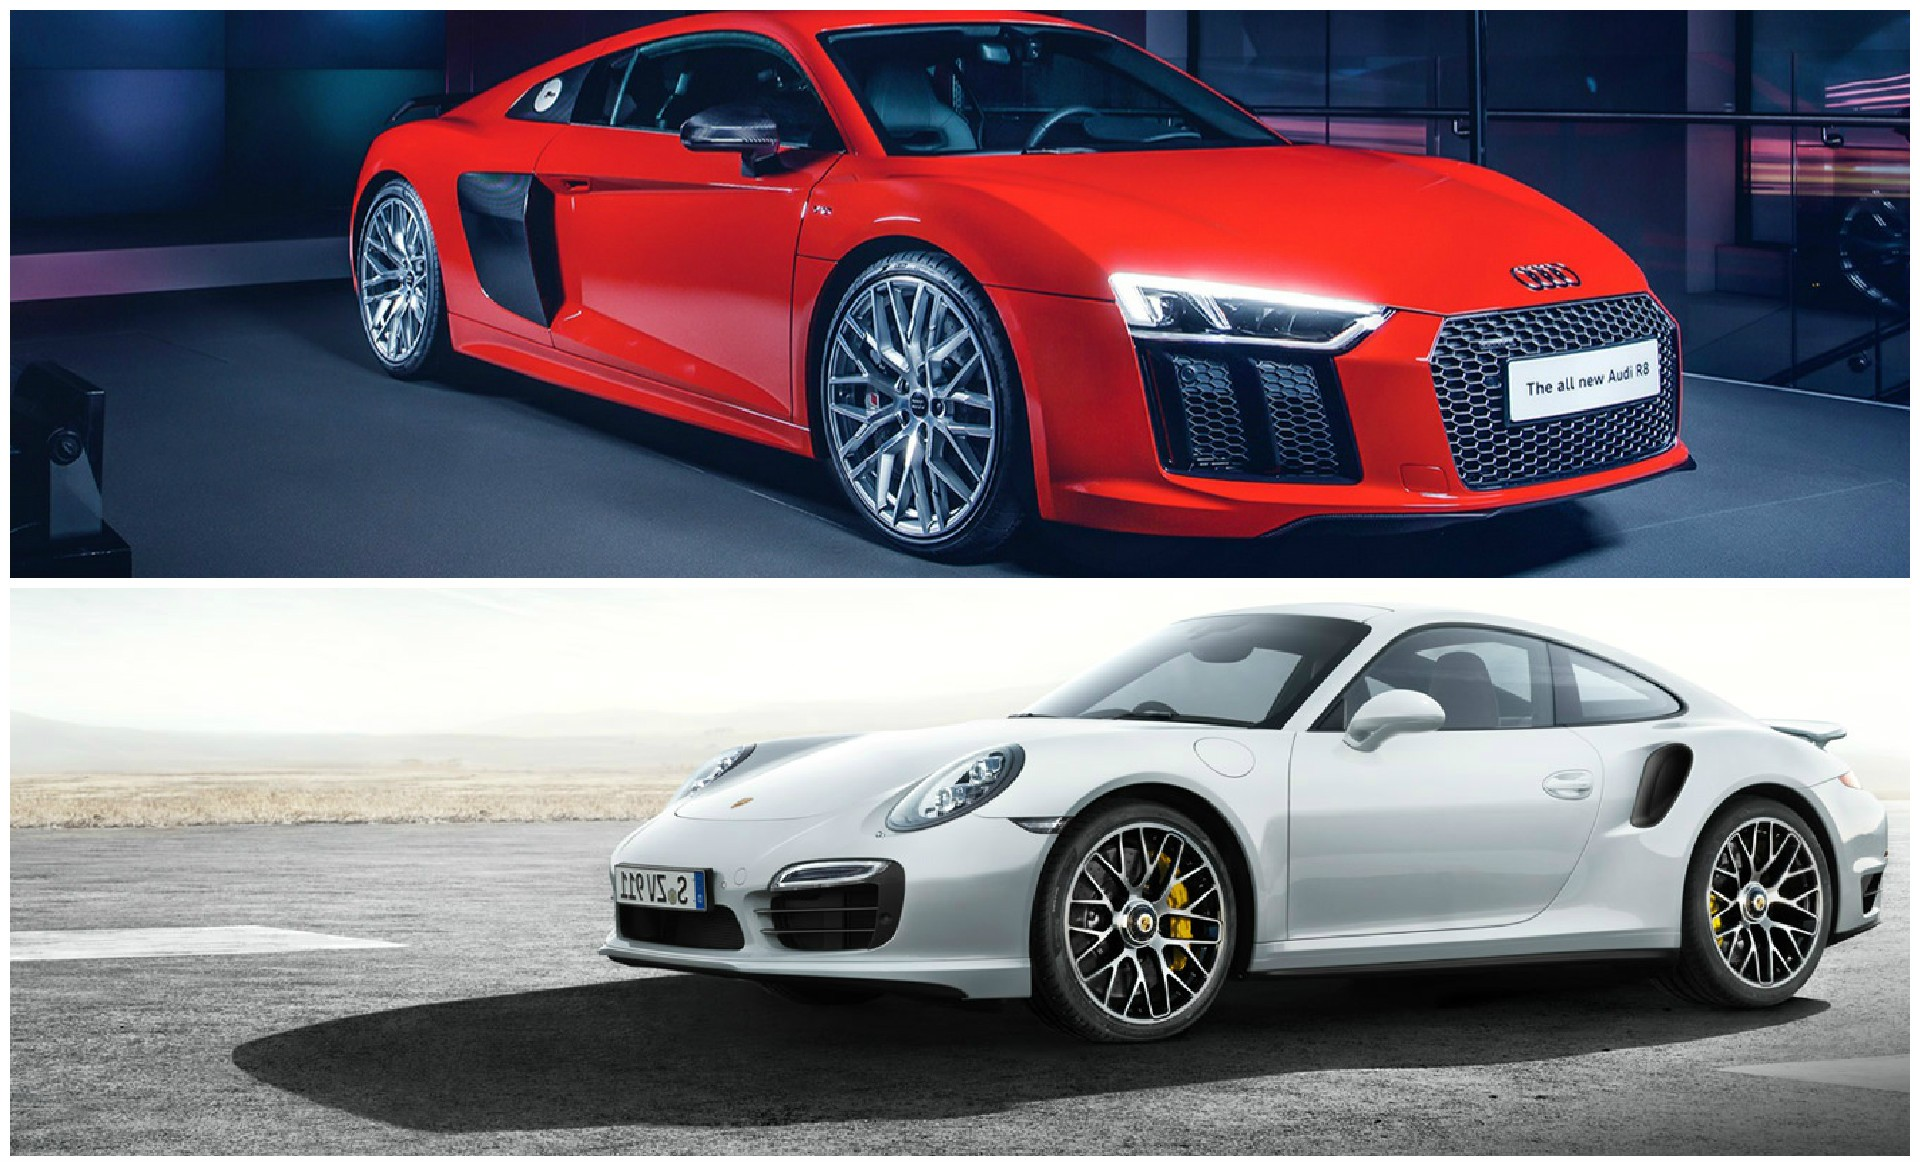 All New Audi R Launching In Britain V Supercar Costs Turbo Money on Audi R8 V8 Turbo